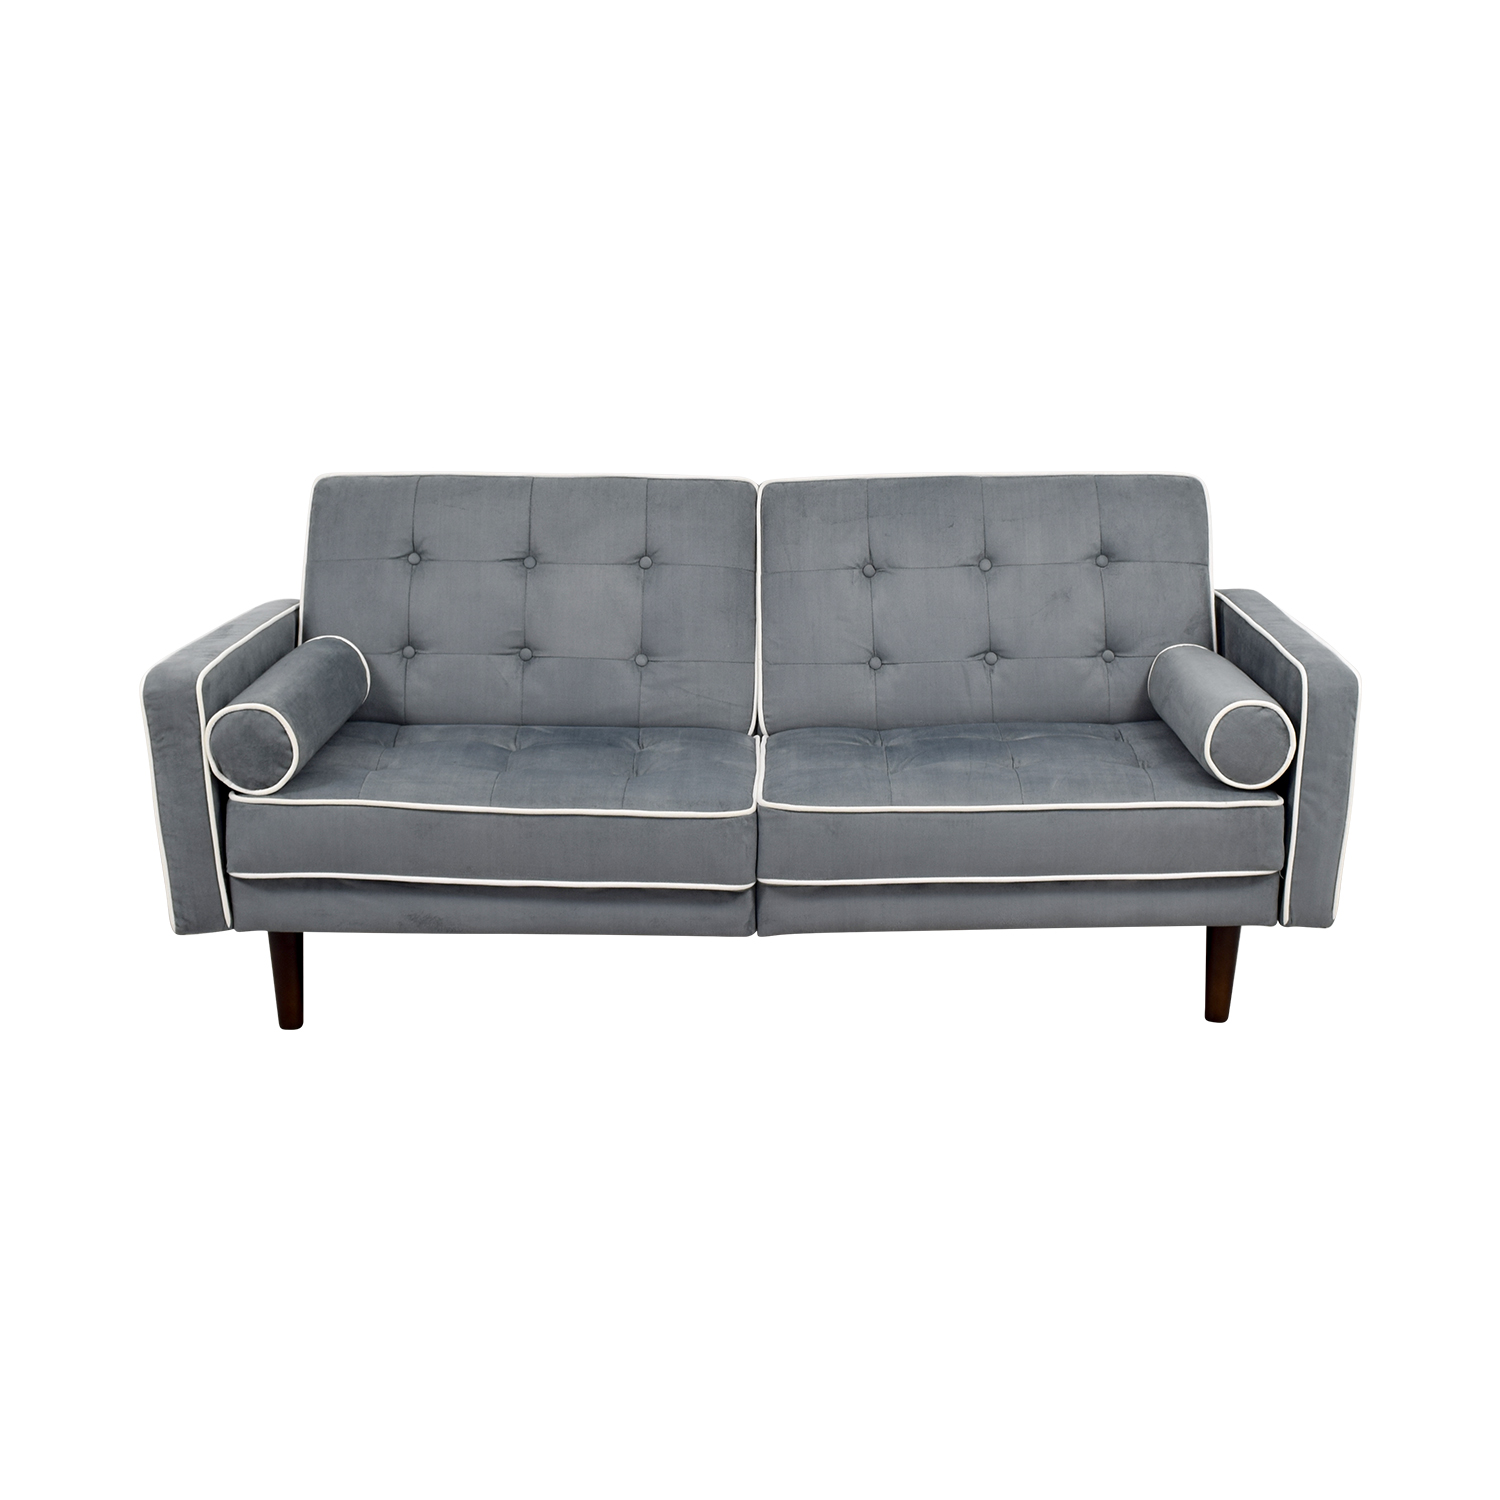 wayfair furniture sofa reversible chaise bed for beds to match every